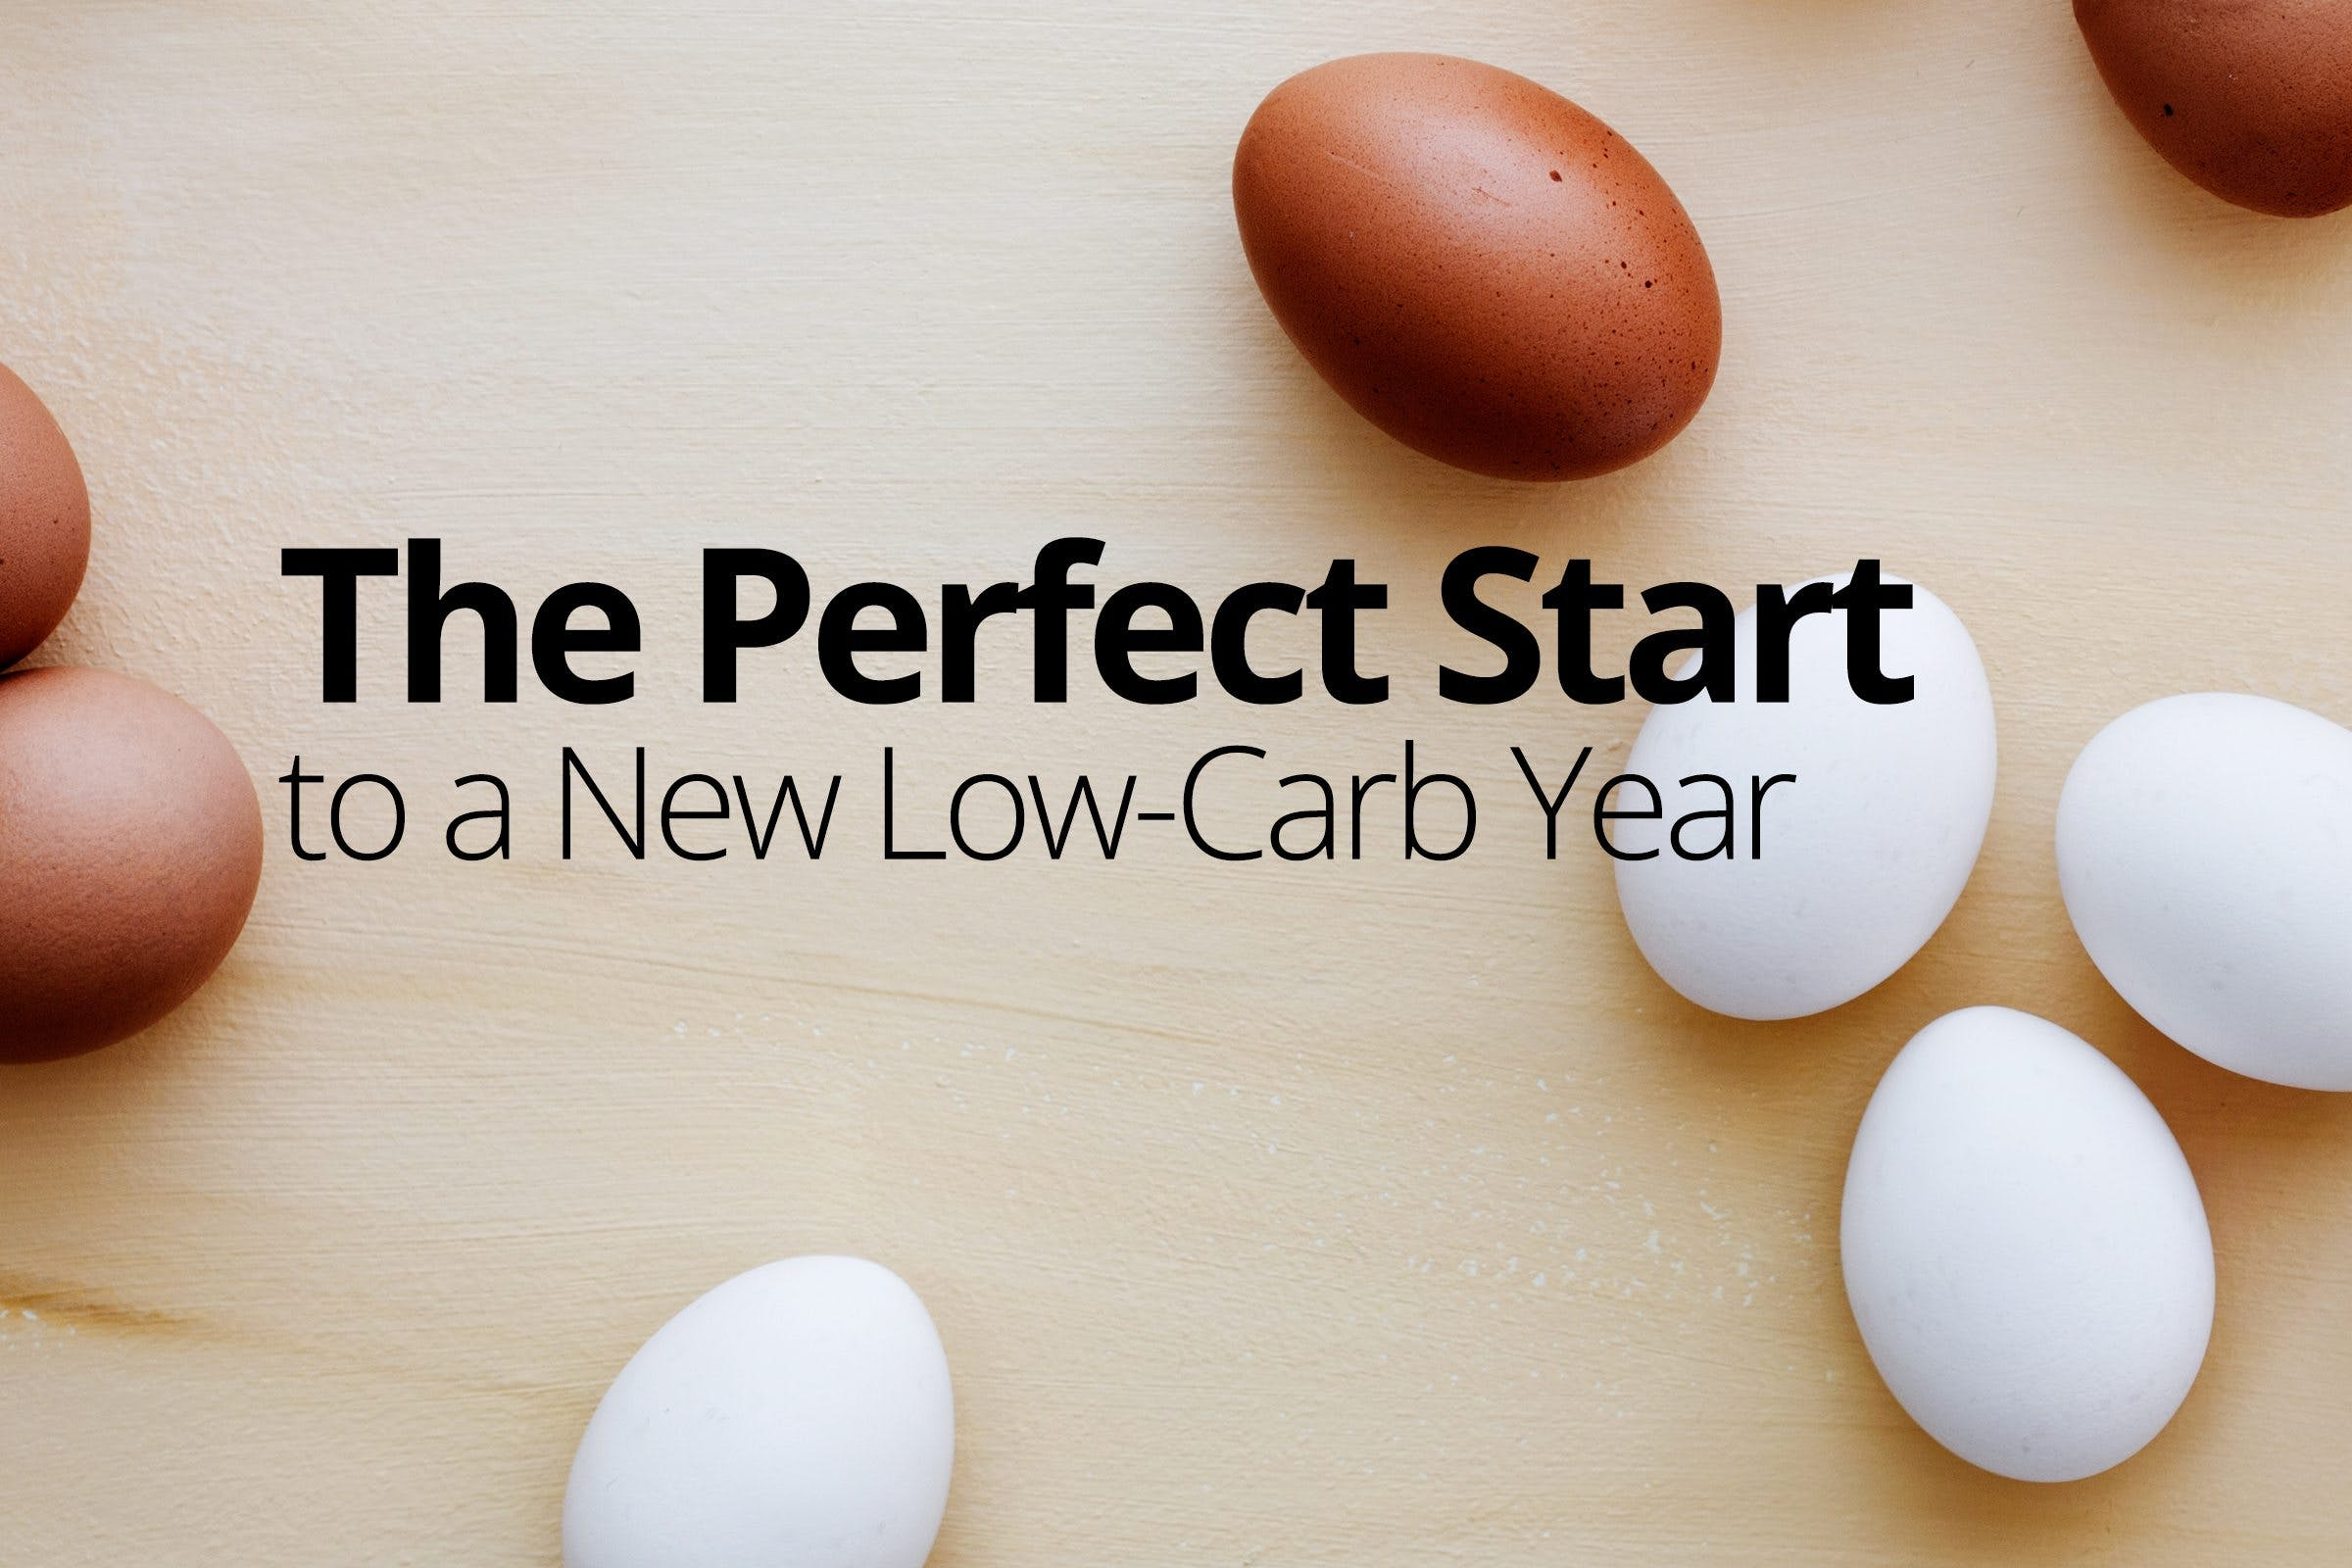 A perfect start to a new low-carb year